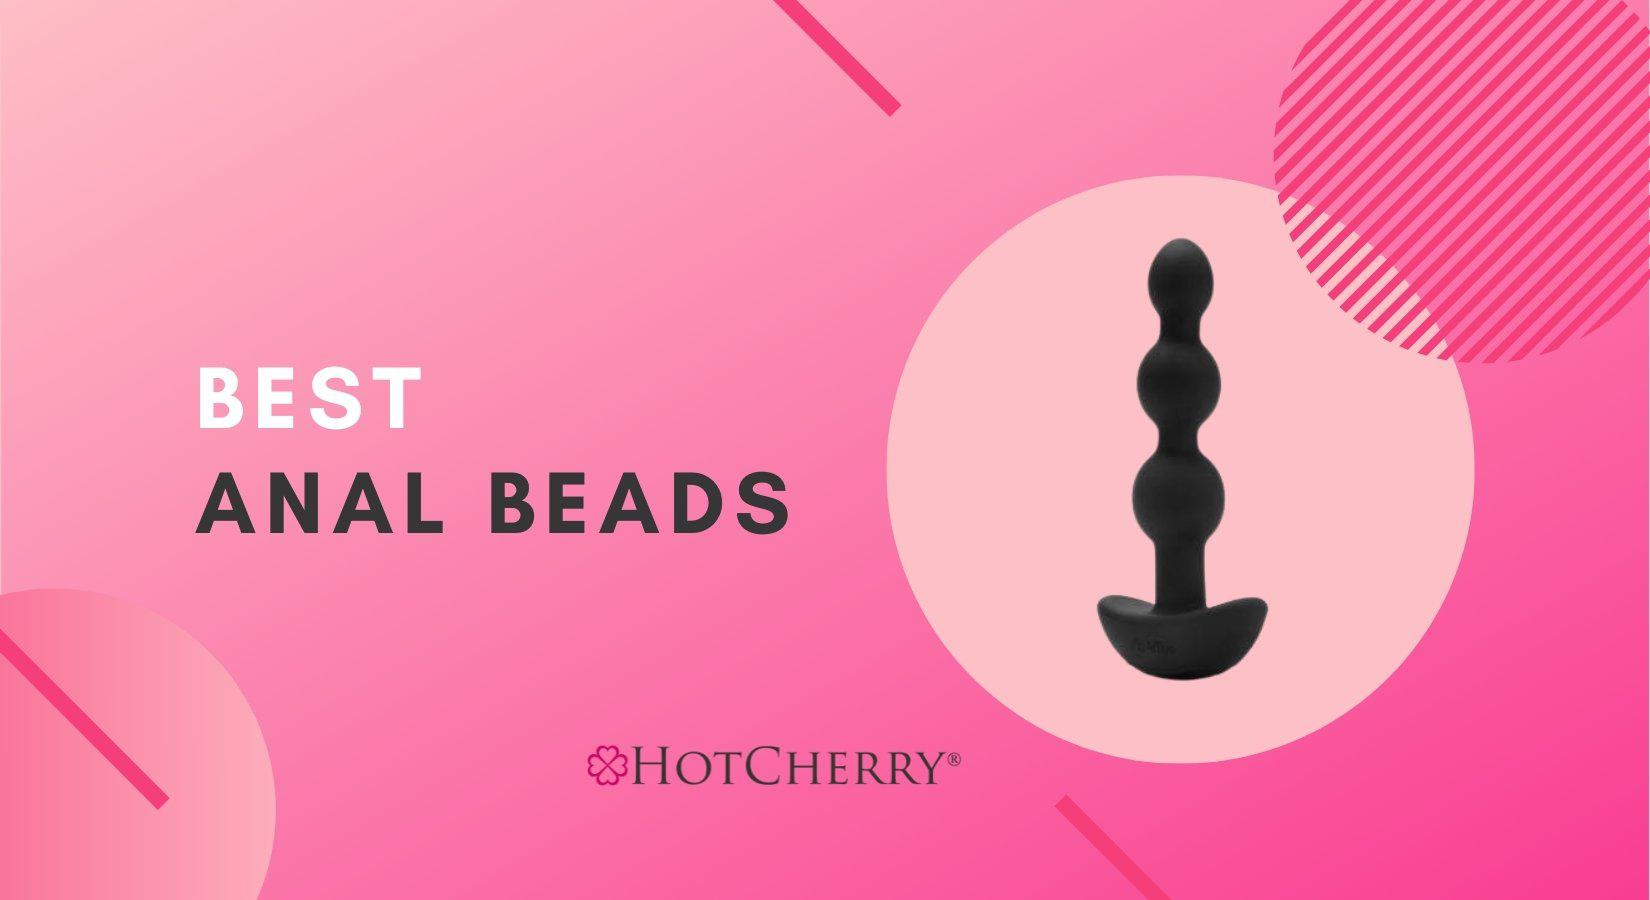 Best Anal Beads